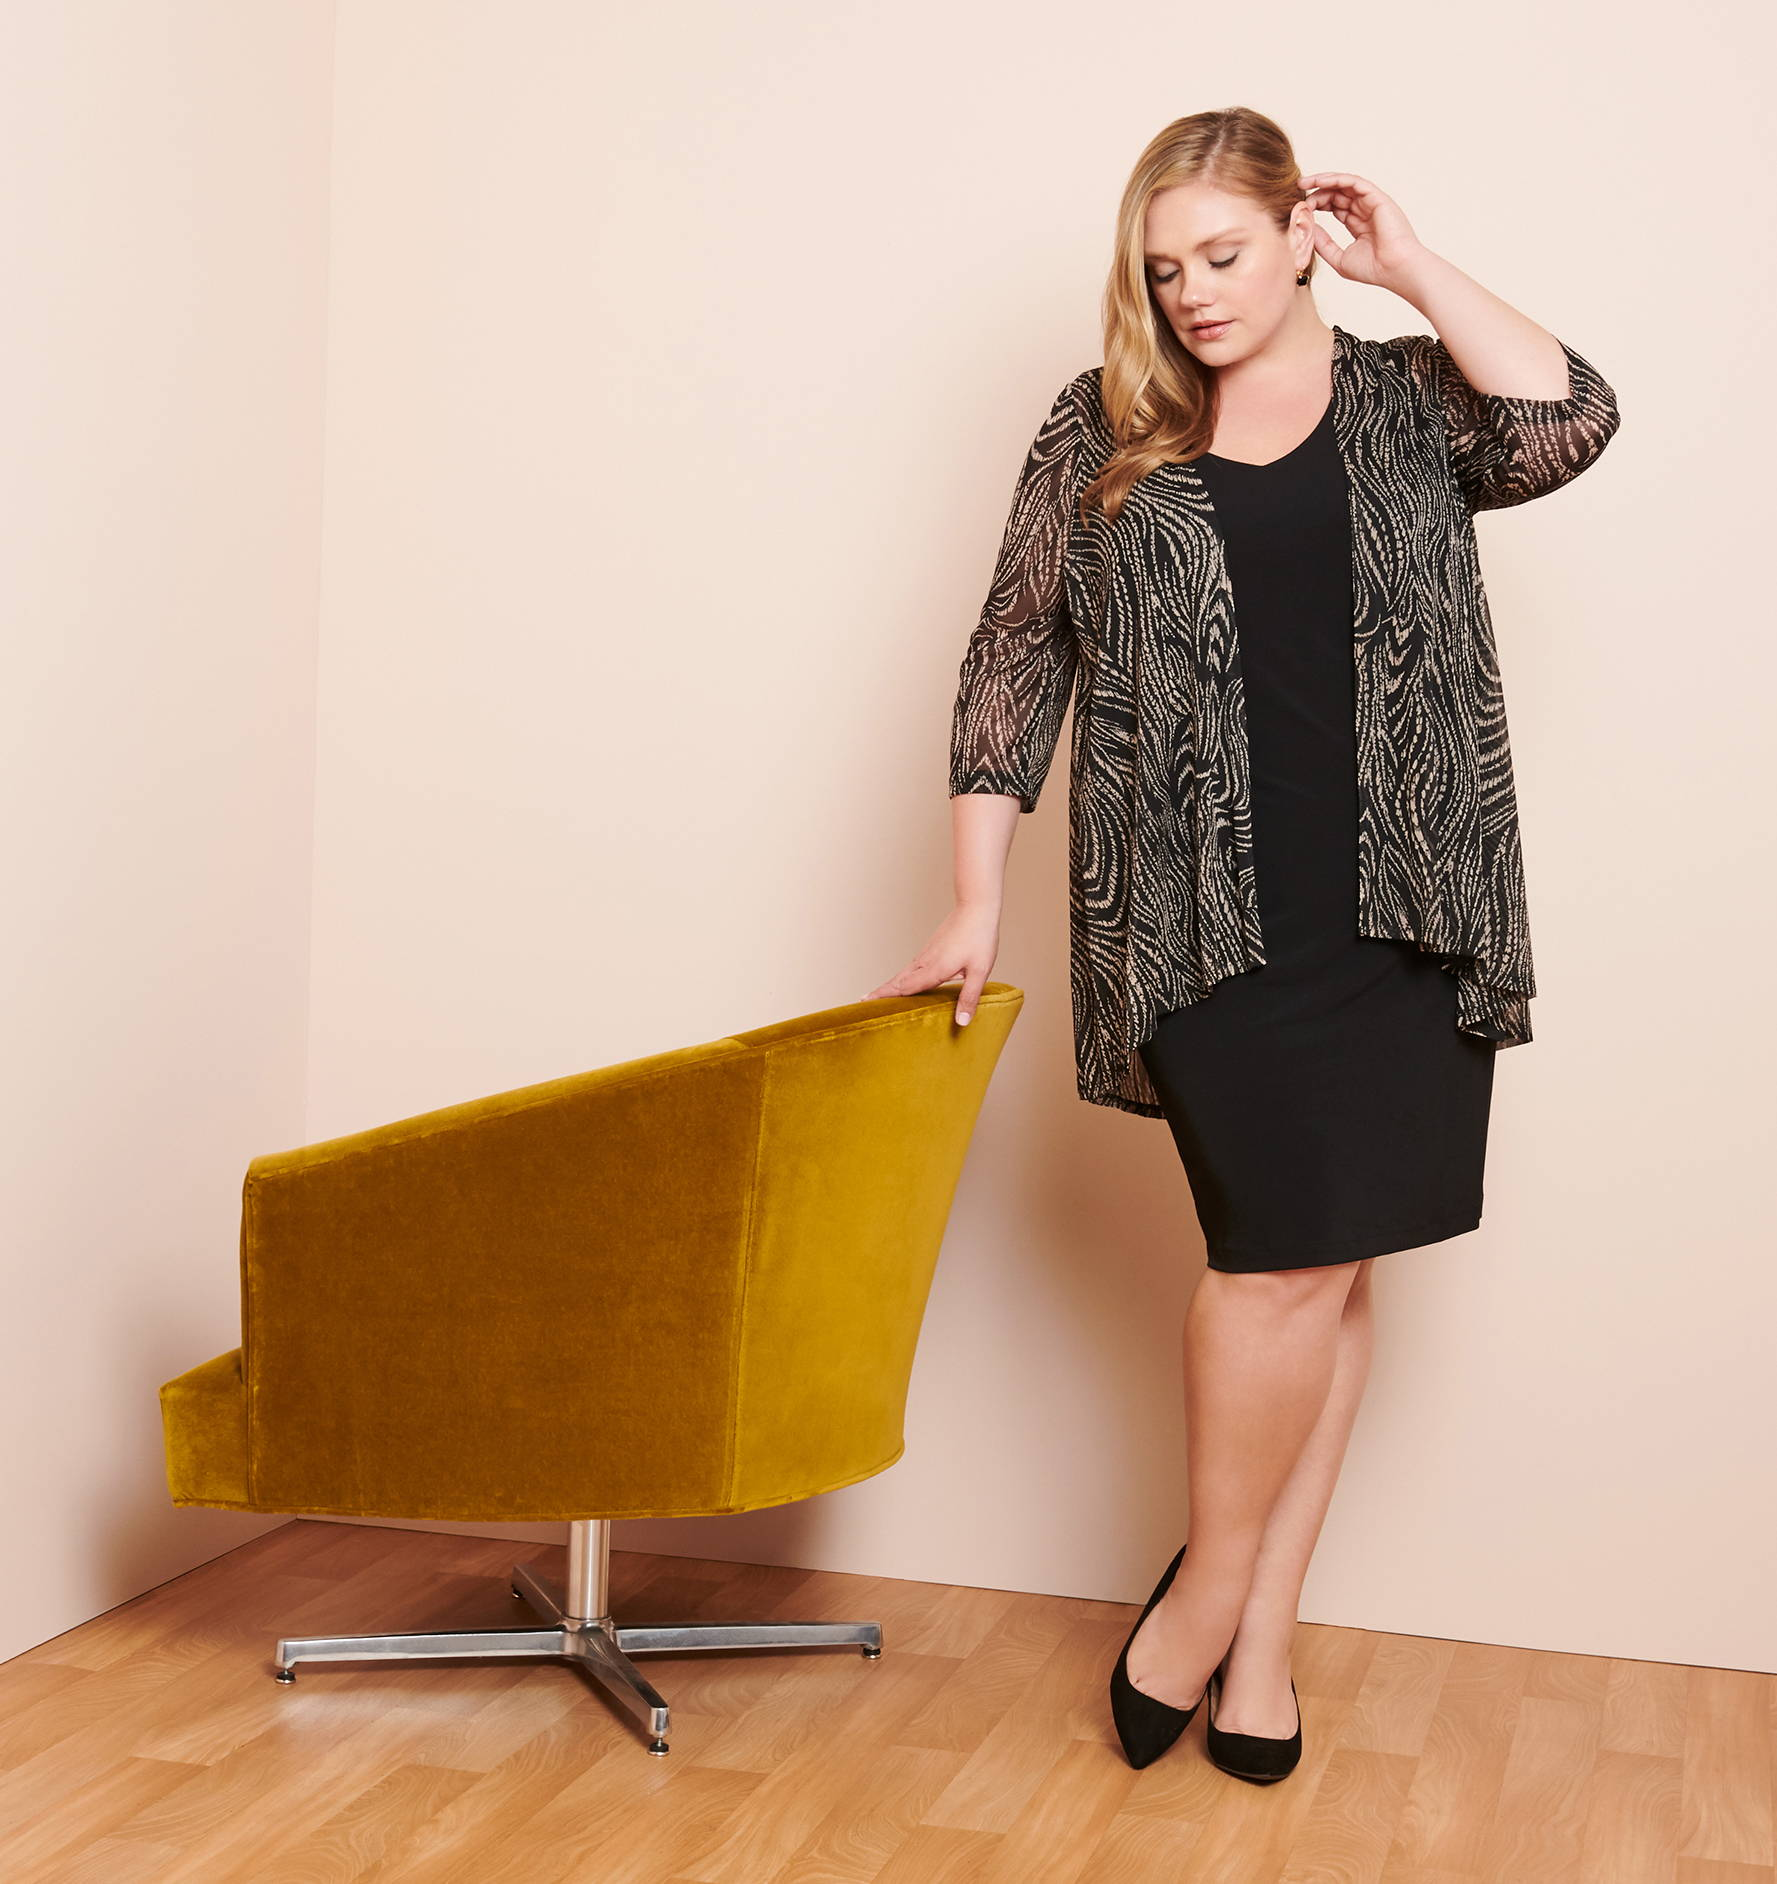 Plus size blonde woman wearing a black sheath dress with zebra mesh jacket overlay leaning on mustard velvet chair